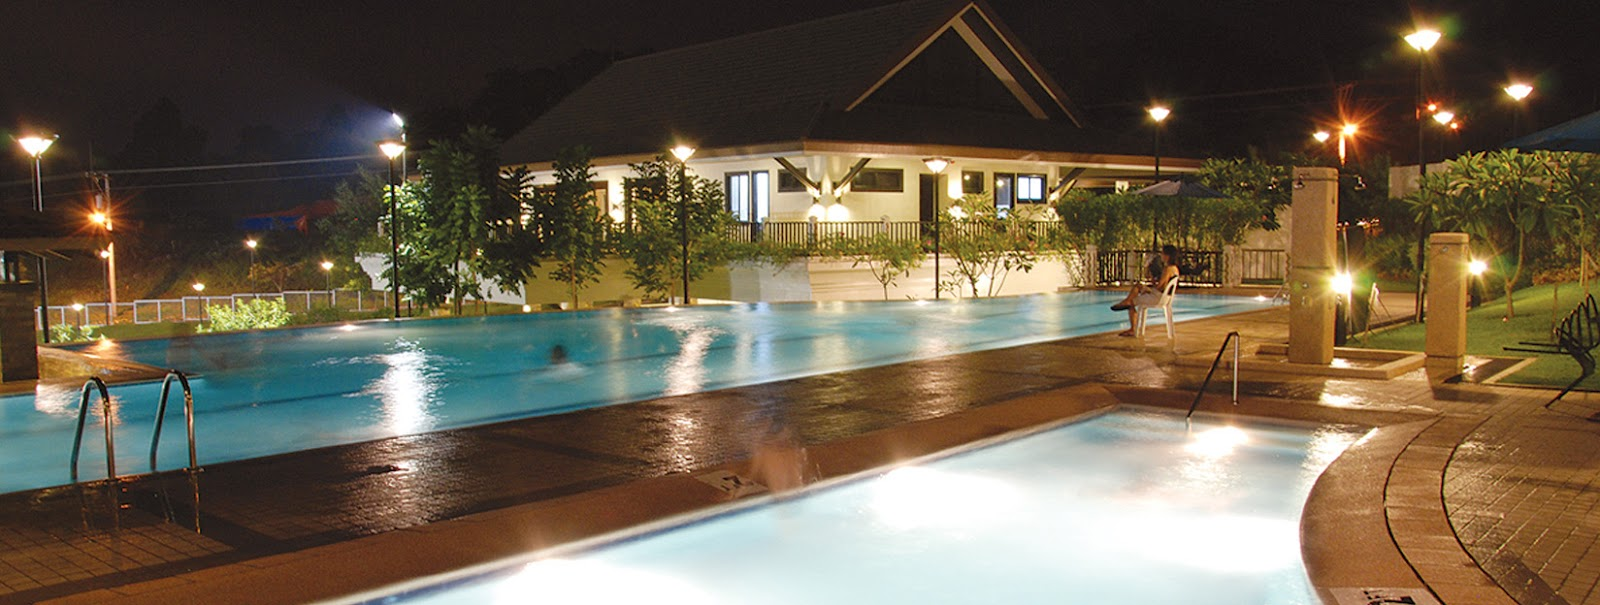 Davao home provider northcrest davao city - Apartelle in davao city with swimming pool ...